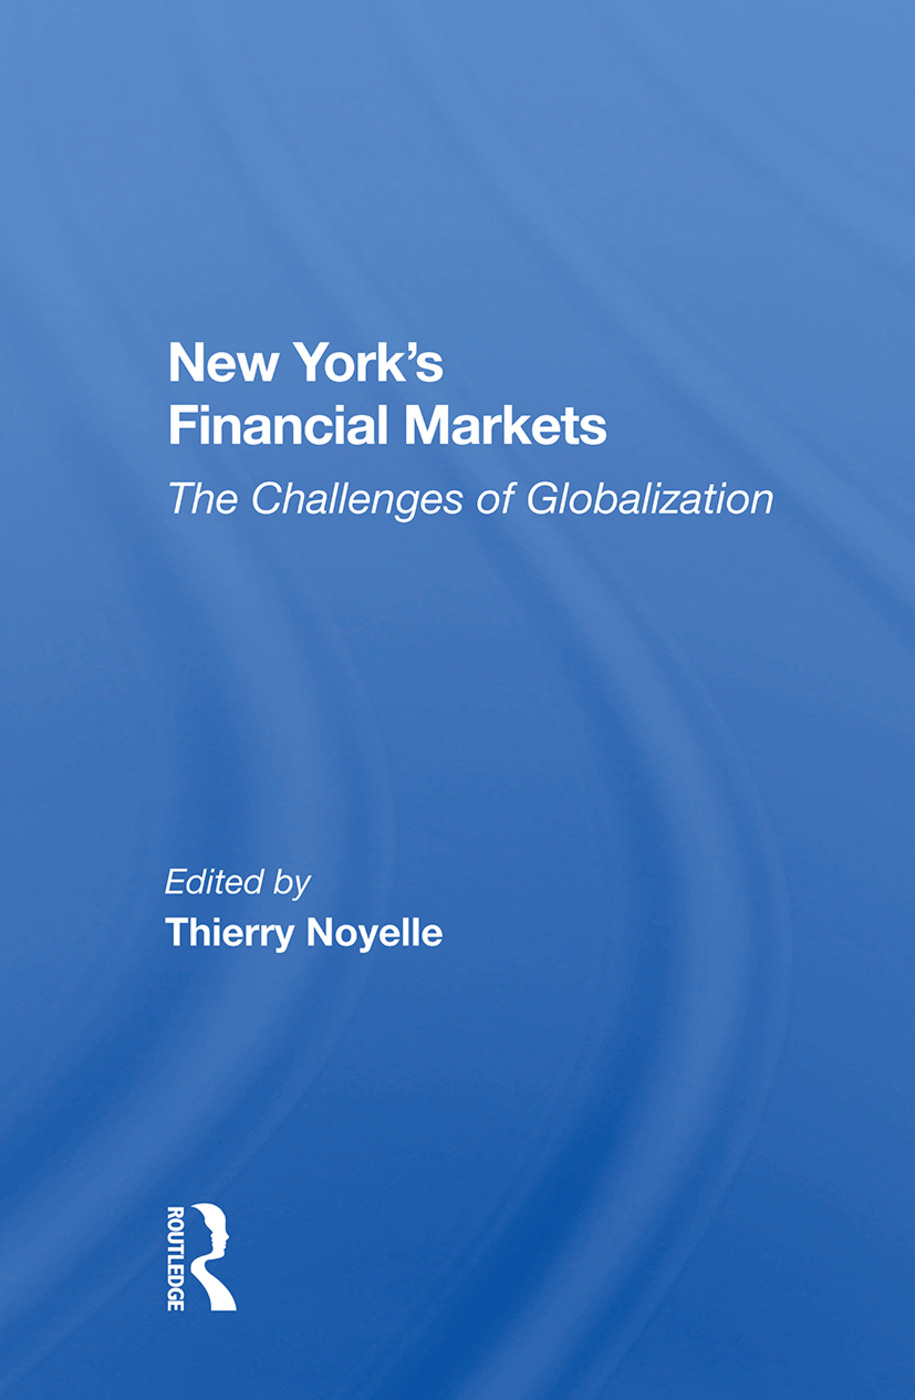 New York's Financial Markets: The Challenges of Globalization book cover